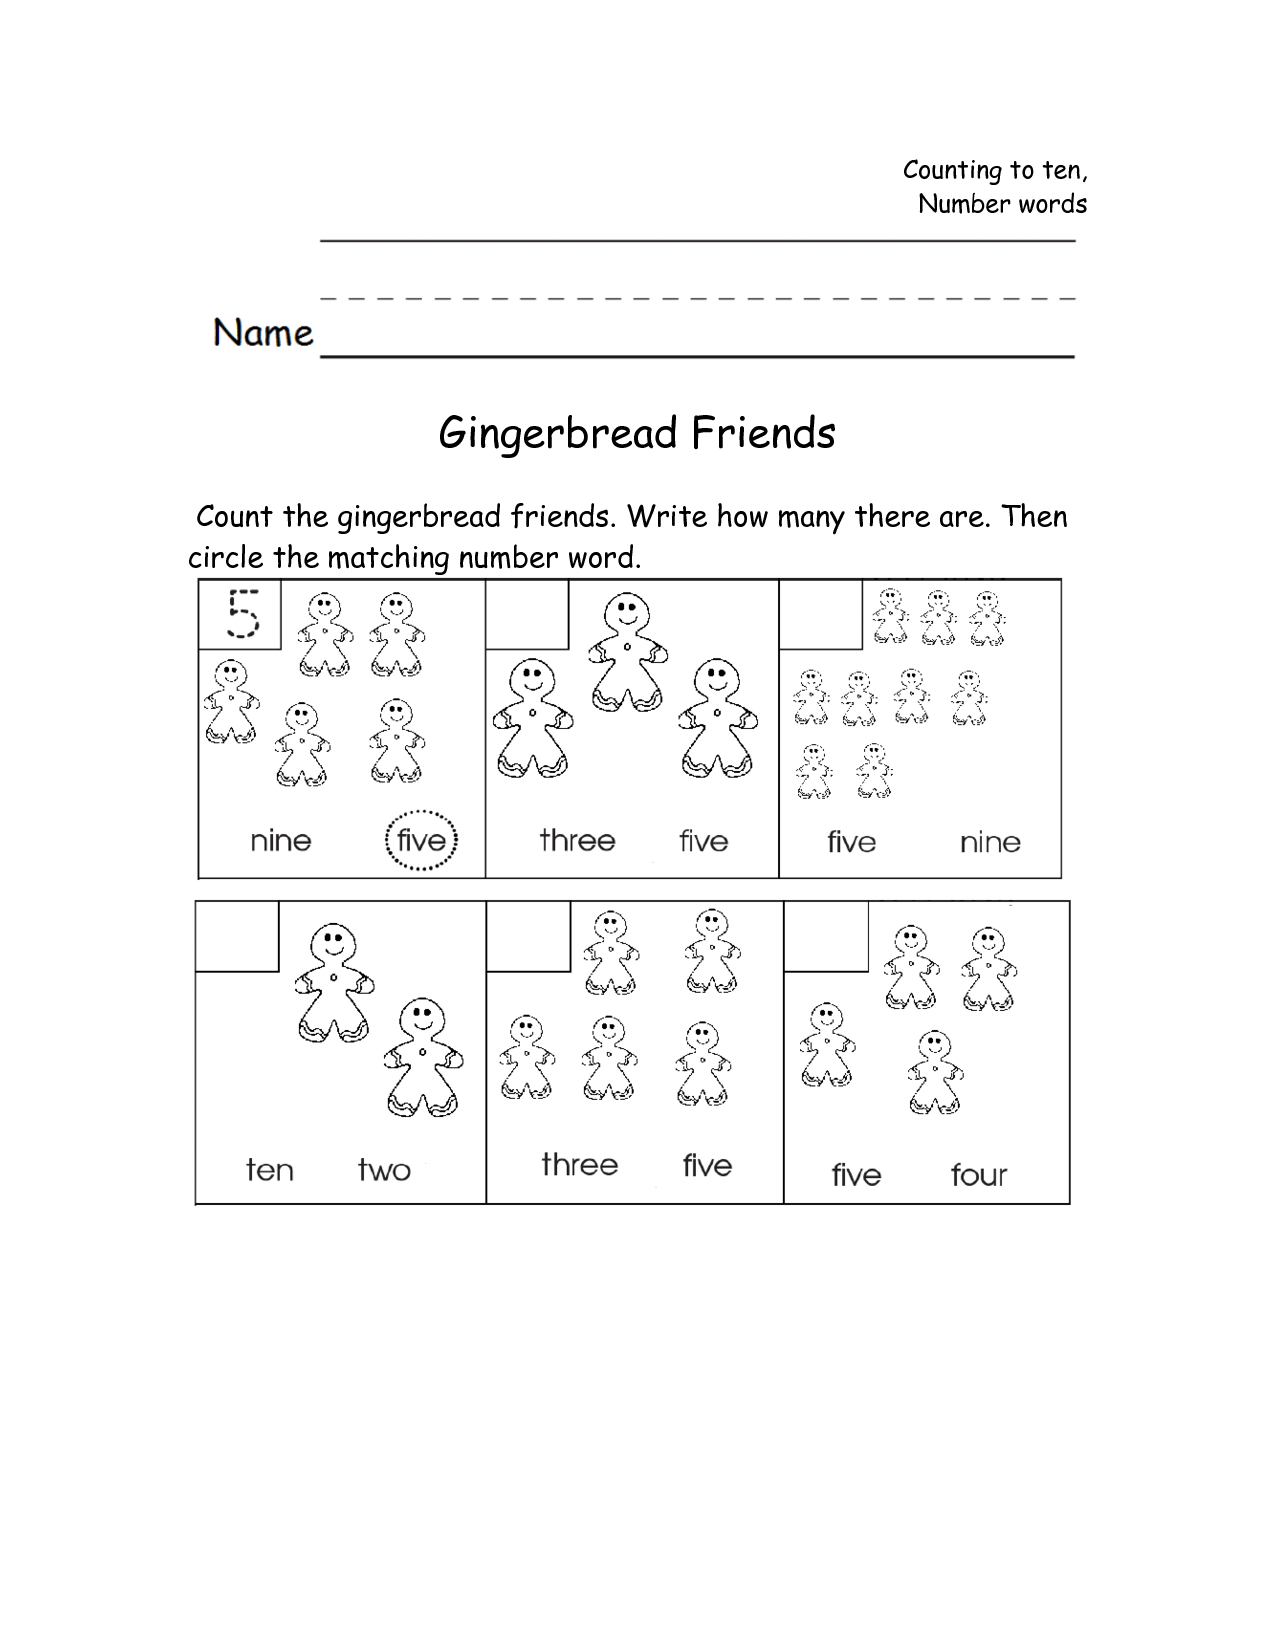 Friendship Print Worksheet For Kindergarten